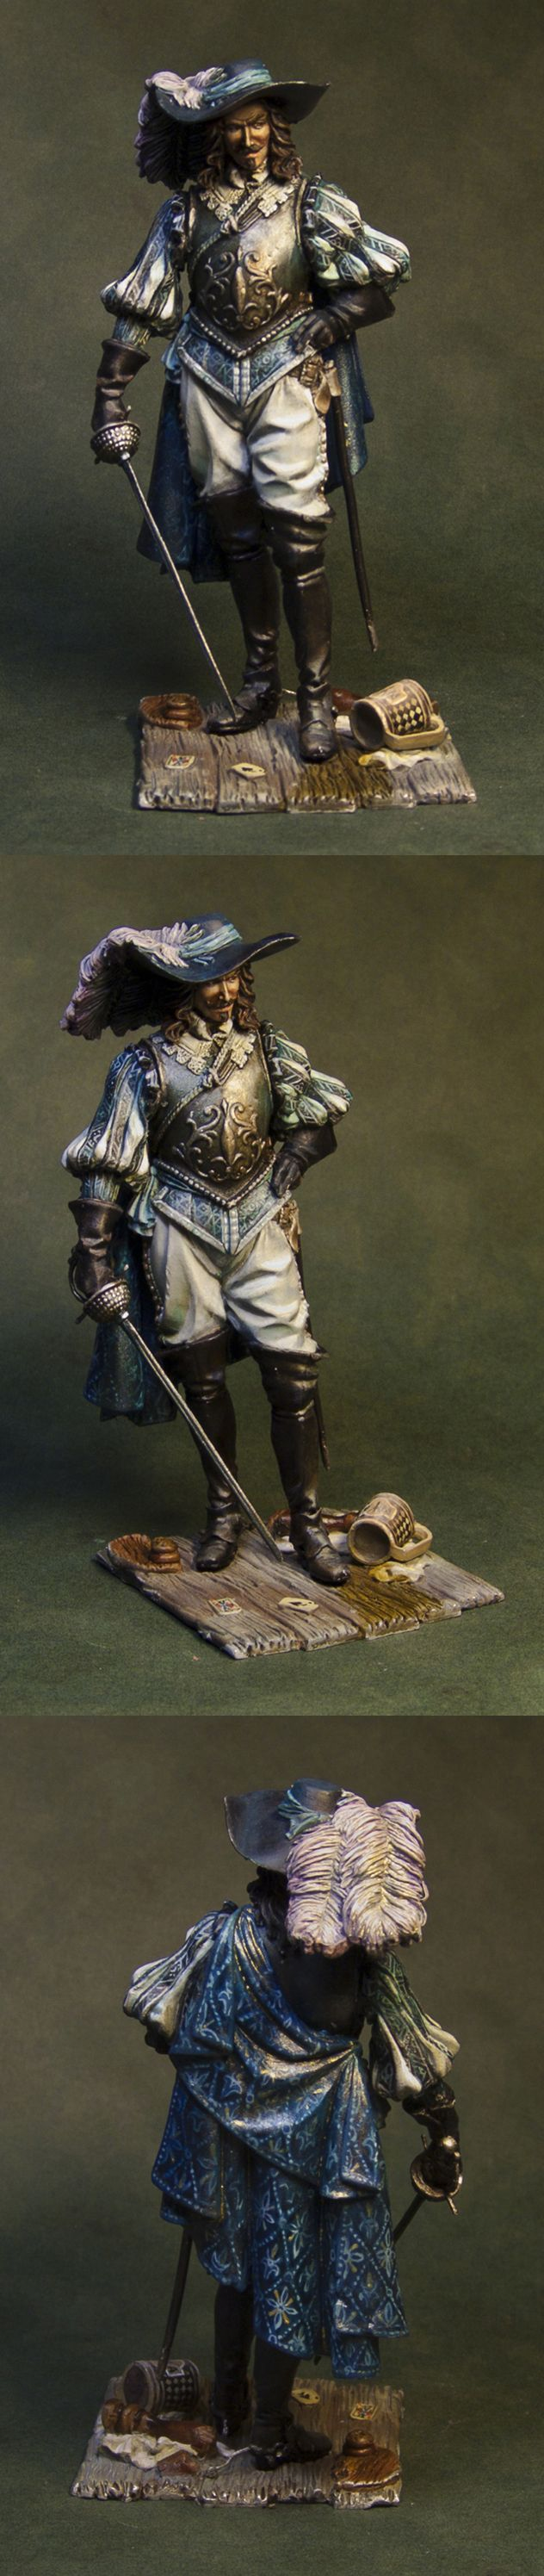 Spanish Nobleman (by oxotnikkod from www.coolminiornot.com?)